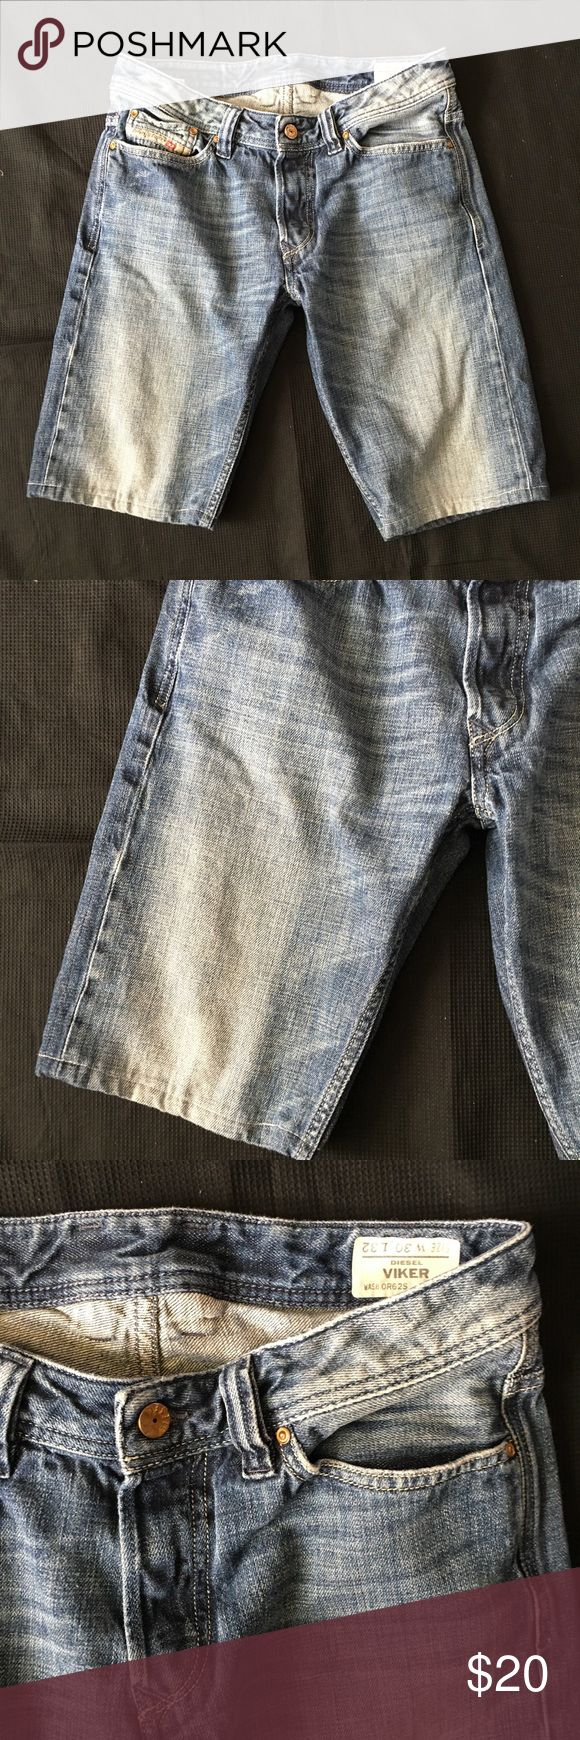 "Diesel Viker Denim Shorts Jean Shorts Men's 30 Inseam measures apx. 11.75"" and the rise measures apx. 8.5"". They are tag size 39x32 (they have an inseam length although they are Shorts). In overall great condition. Priced firm unless bundled. Diesel Shorts Jean Shorts"